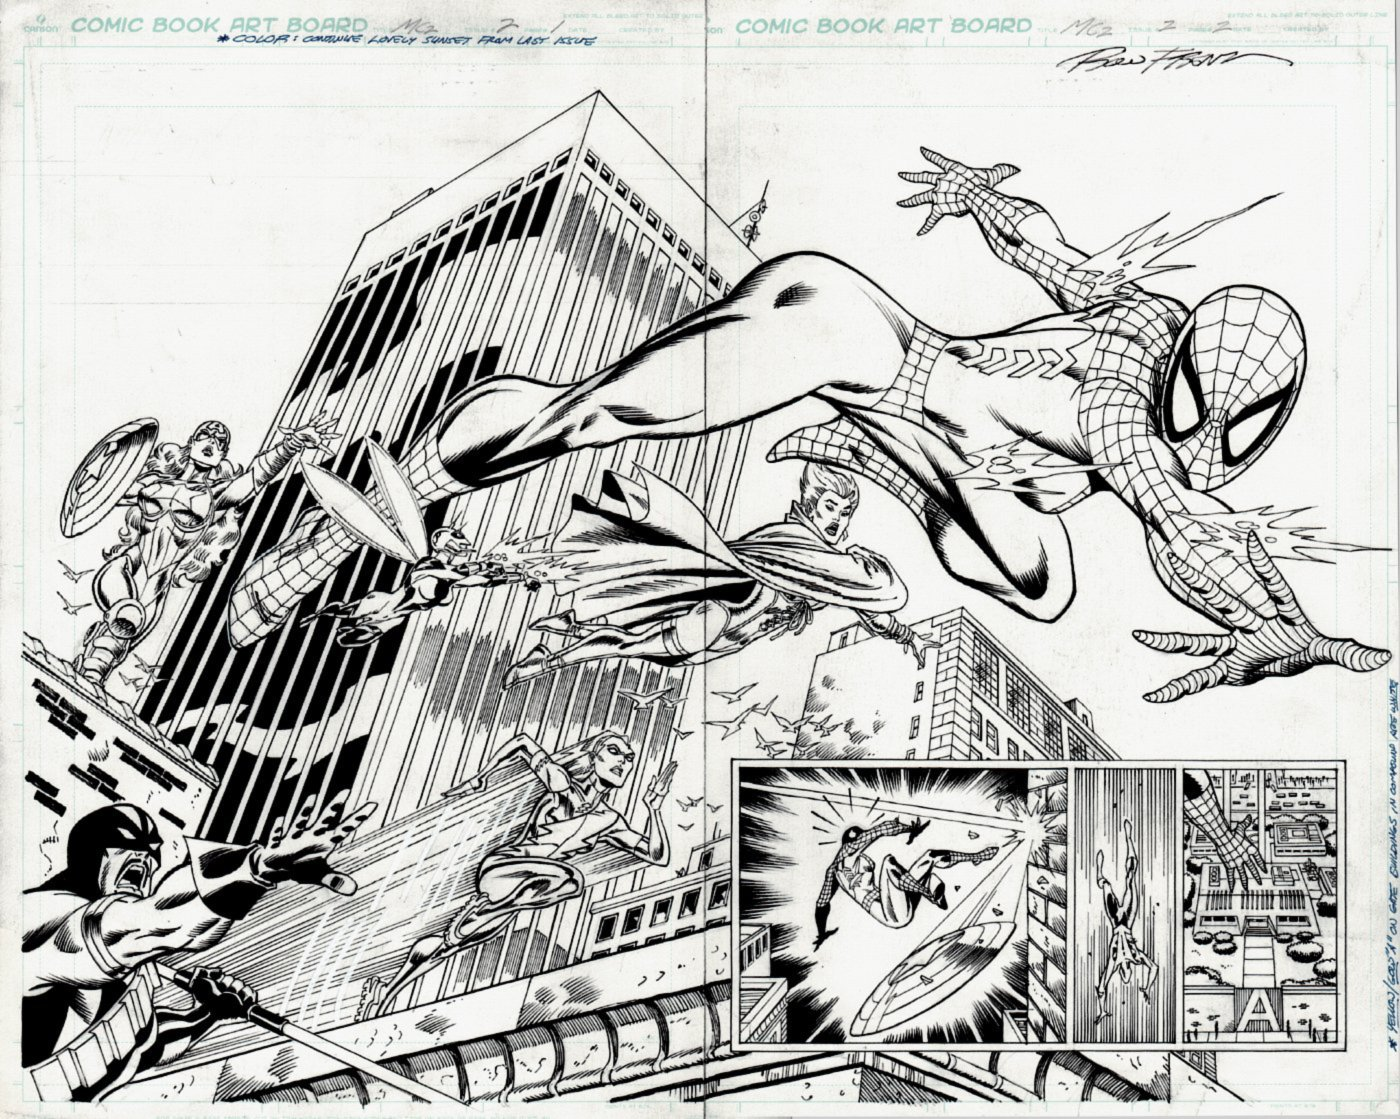 Amazing Spider-Girl #2 p 2-3 Double Spread Splash (AWESOME DOUBLE SPREAD WITH 6 SUPERHEROES!) 2006